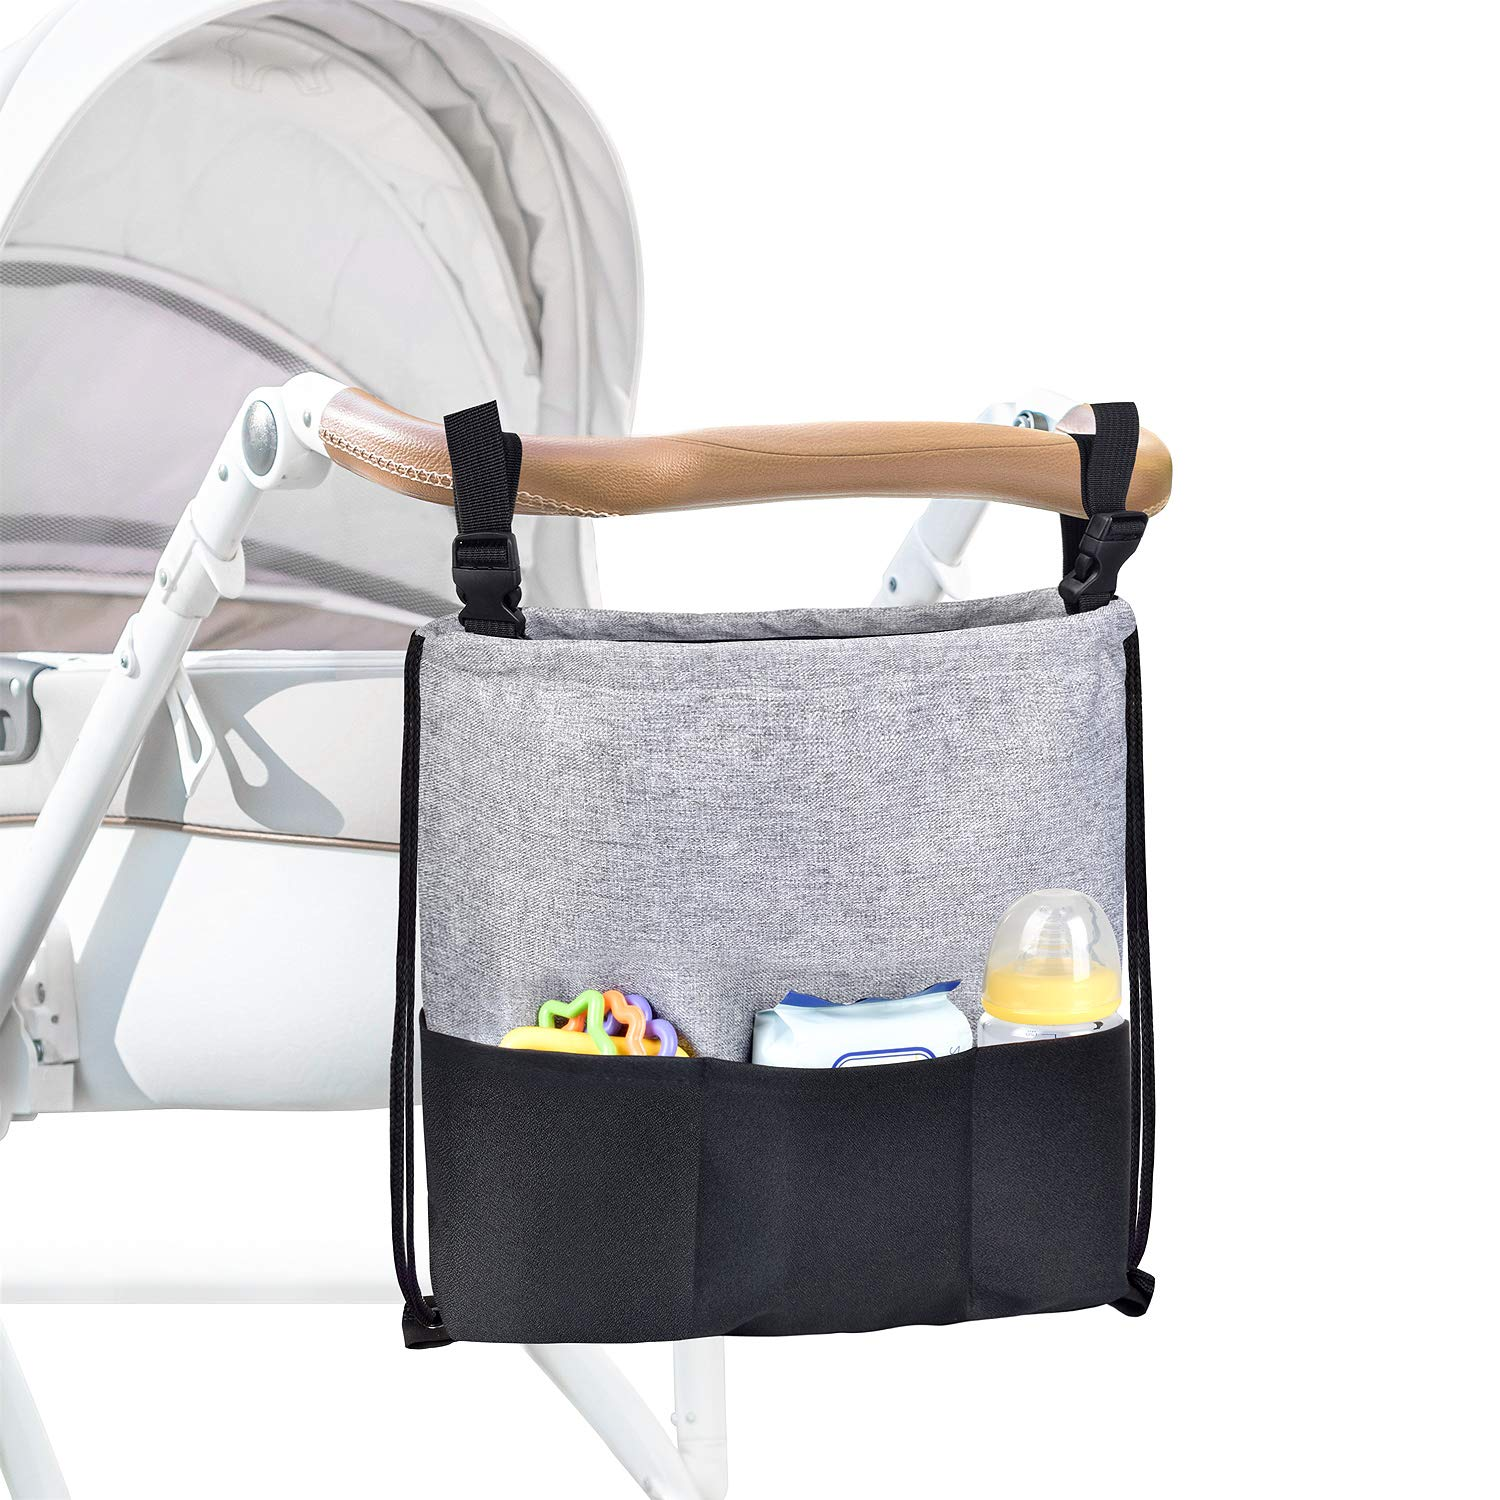 Universal Stroller Organizer Large Capacity Portable Baby Stroller Storage Bag 2way To Use Fit All The Baby Strollers Gift for Newborns - L.Gray